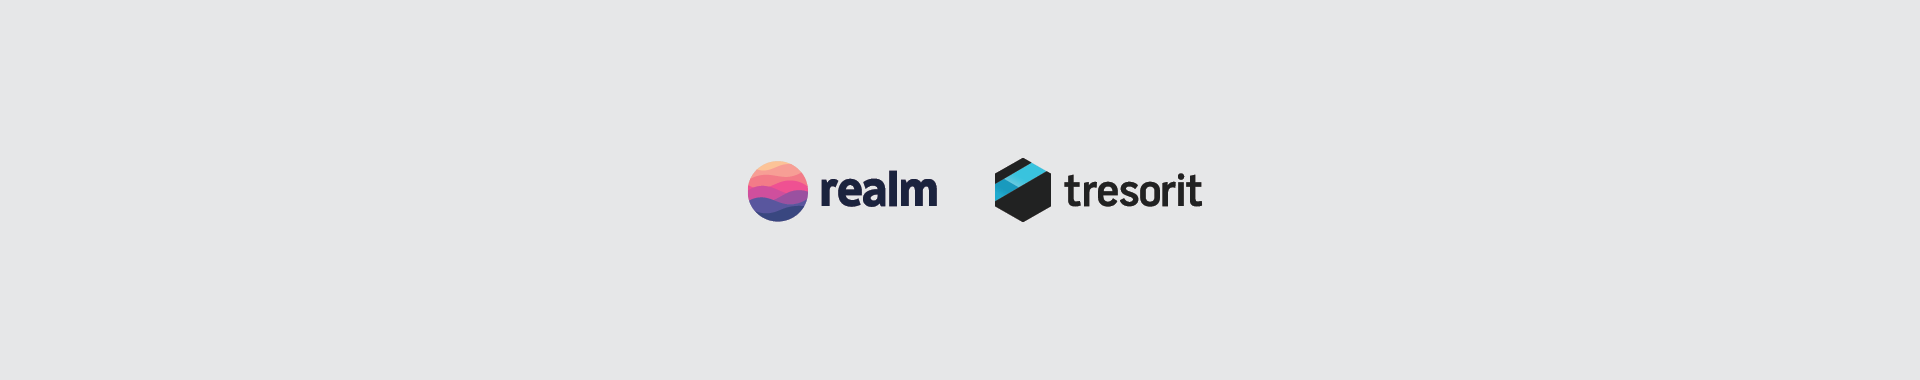 Realm + ZeroKit: Introducing end-to-end encryption to realtime collaboration apps